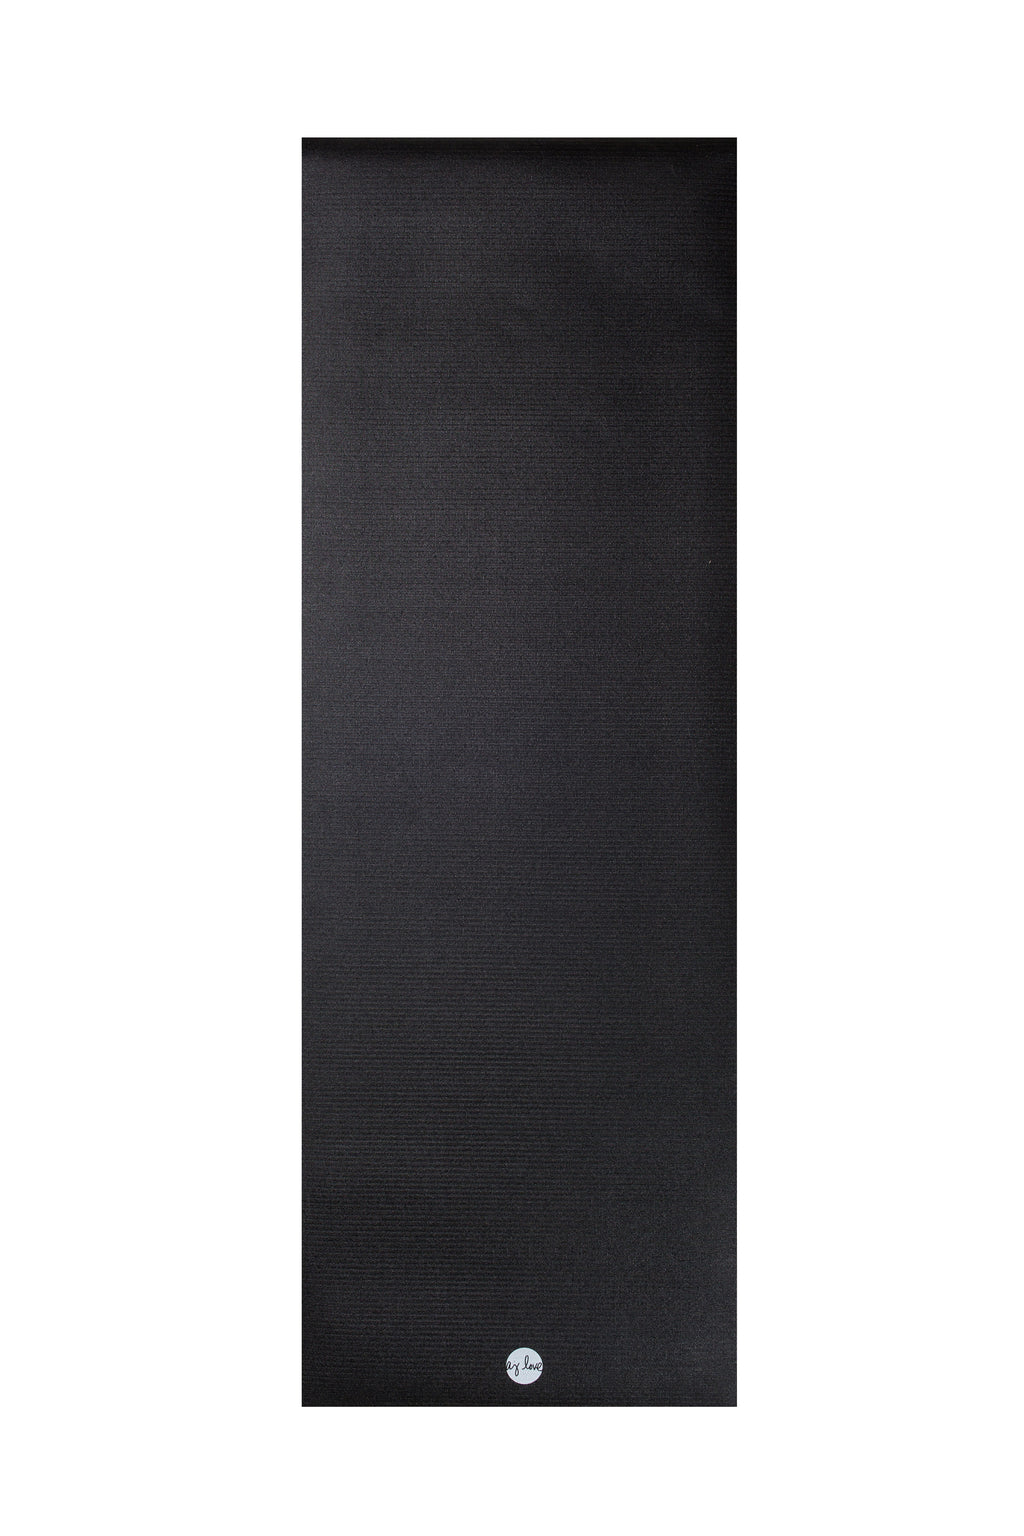 The Solid Black Yoga Mat